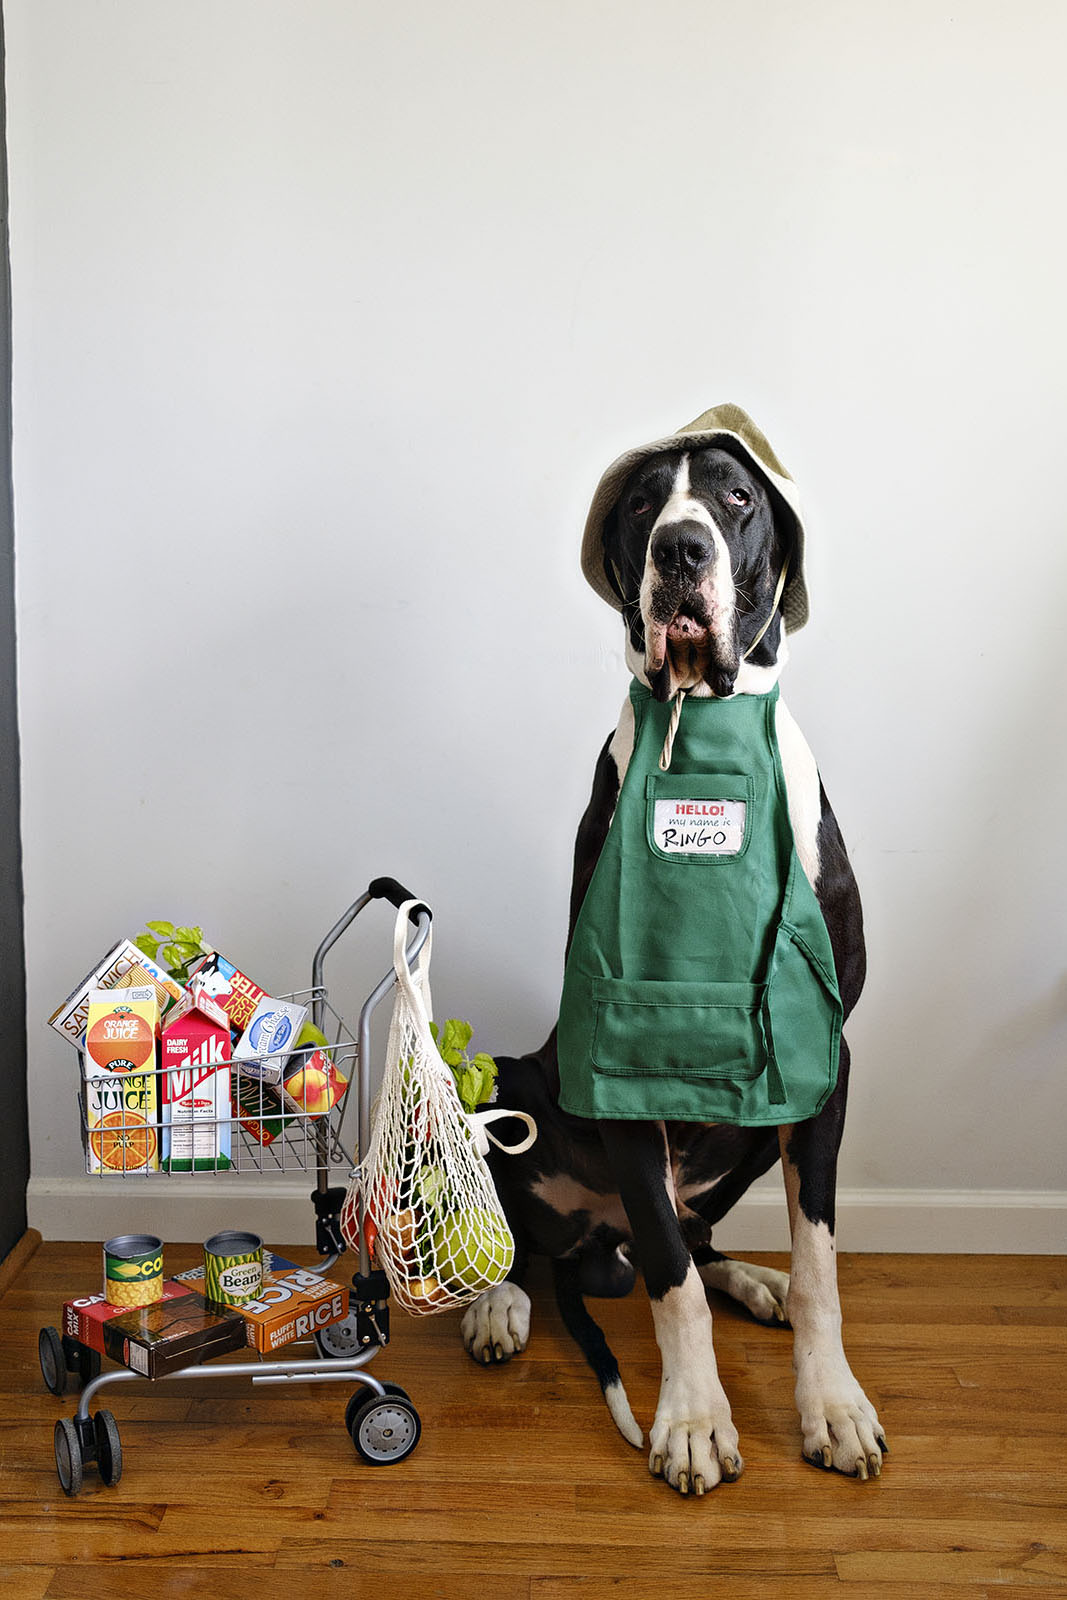 Funny dog photo of a great dane dressed as grocer